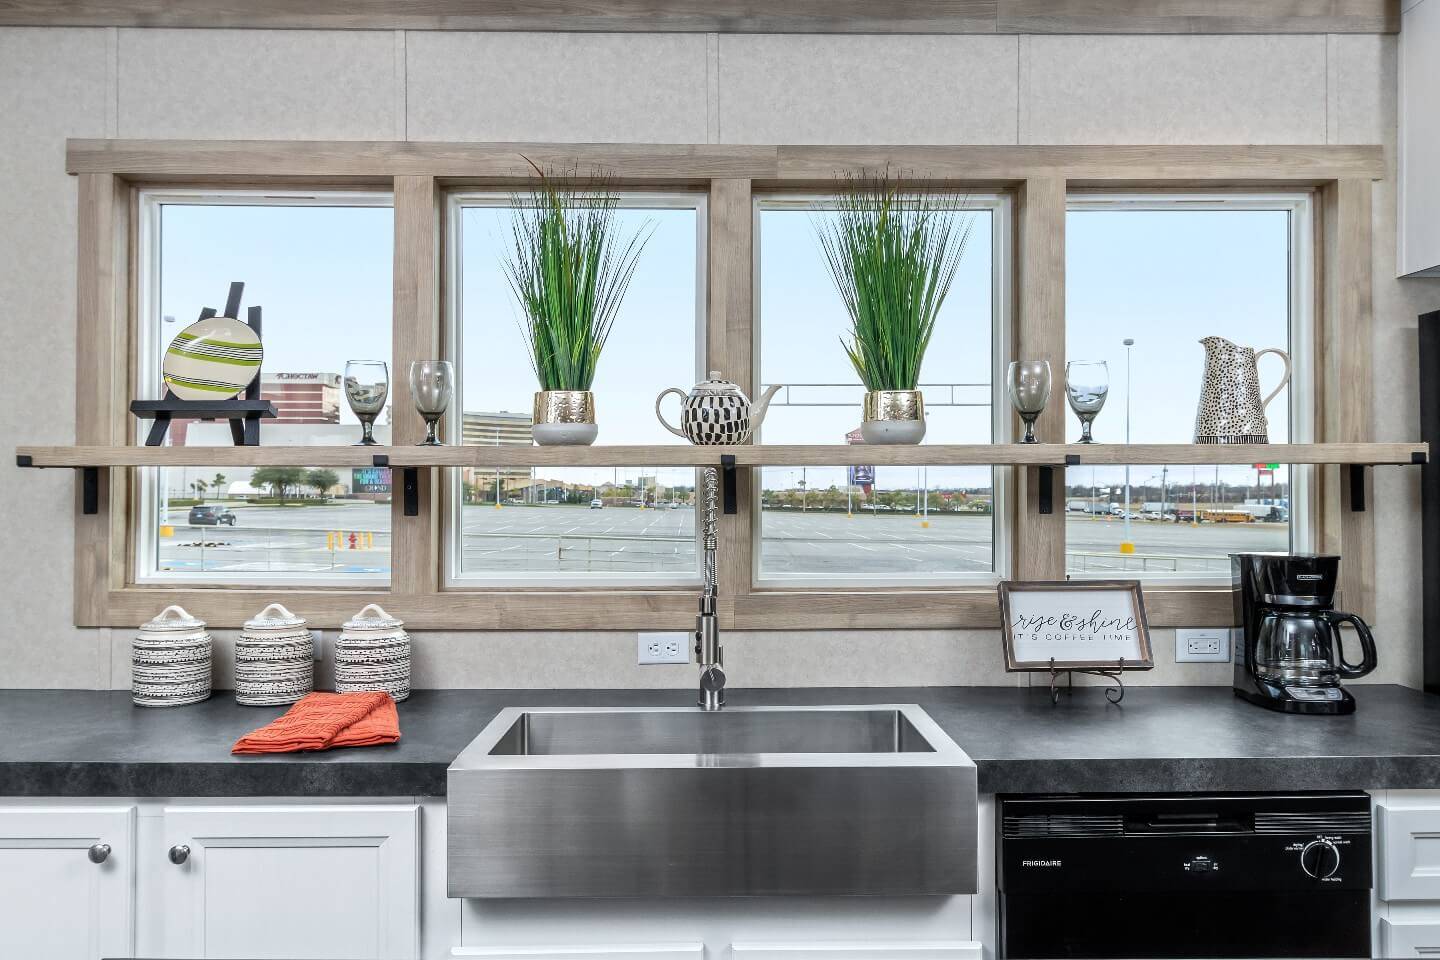 Kitchen Manufactured Homes For Sale Houston